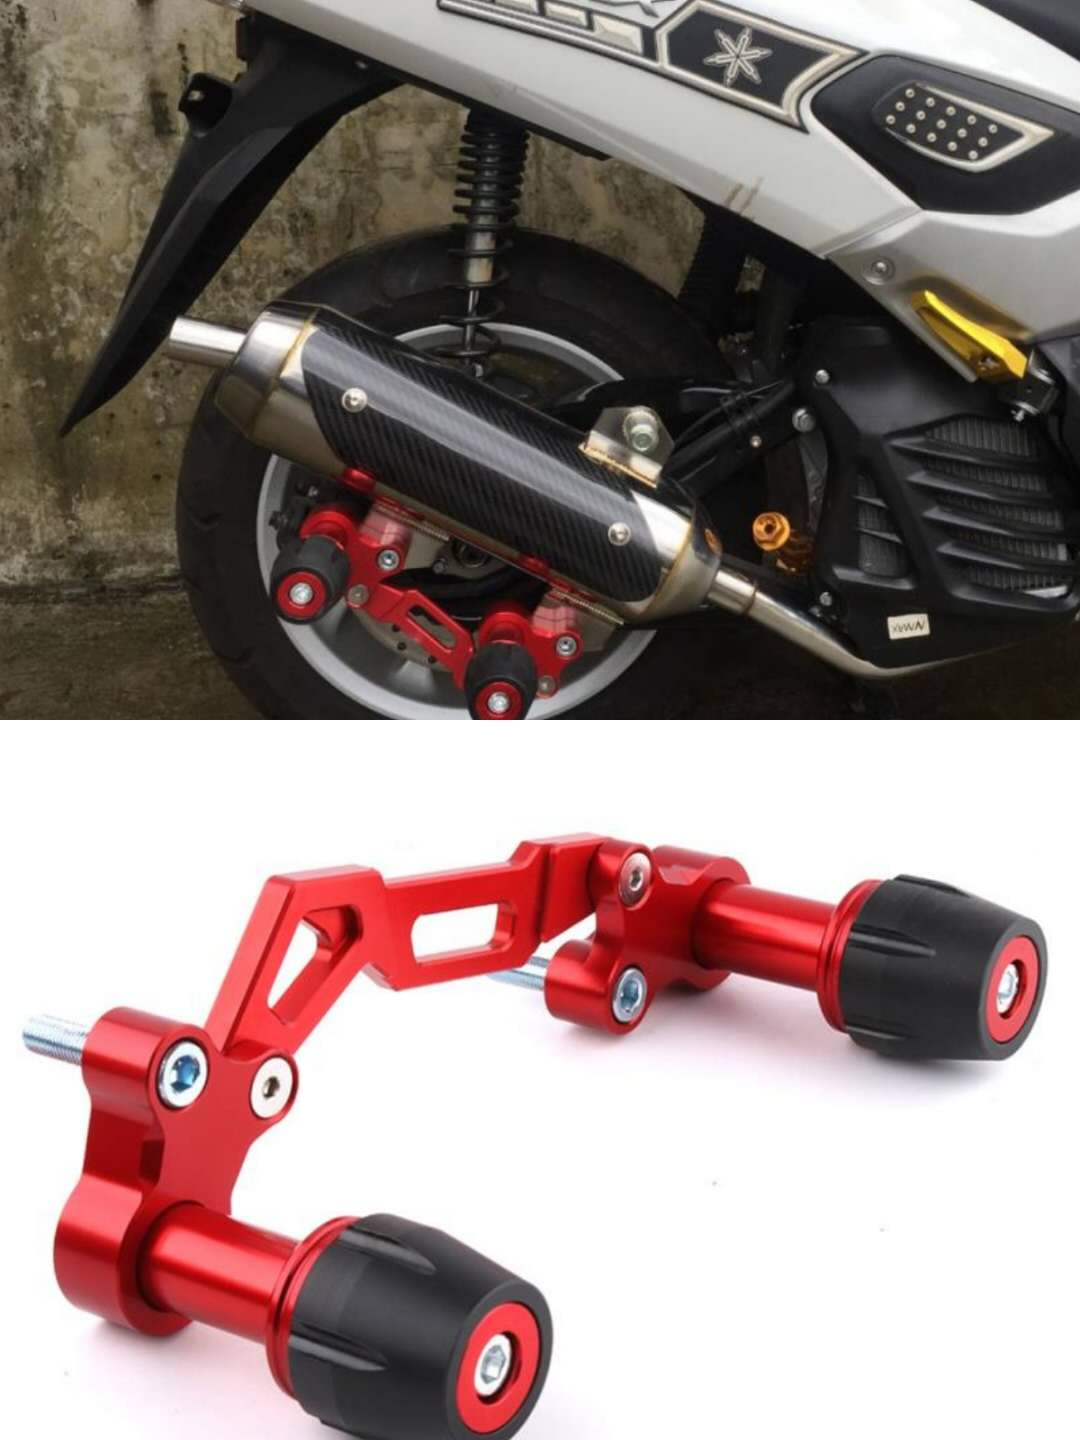 For Yamaha NVX NMAX 155 XMAX 300 PCX 125 Forza Lexi Universal Motorcycle Adjustable Exhaust Pipe